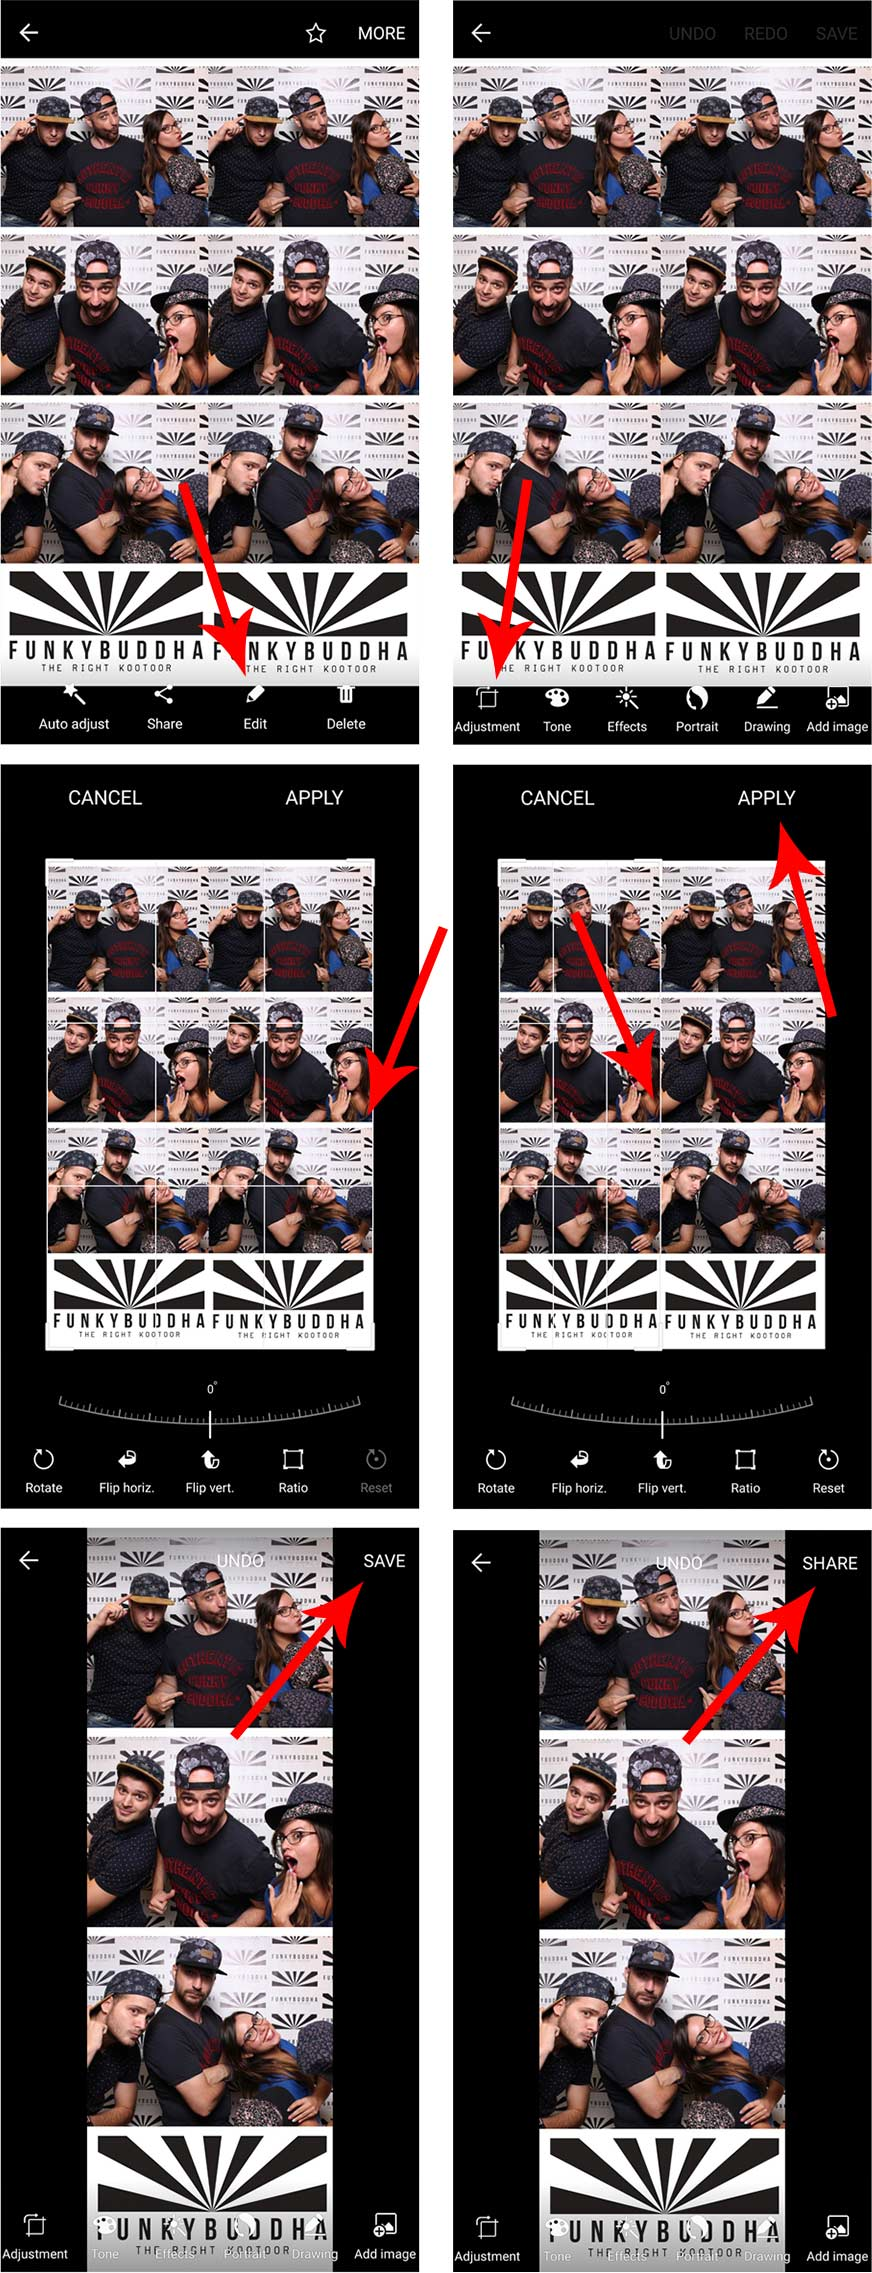 gophotobooth-how-to-crop